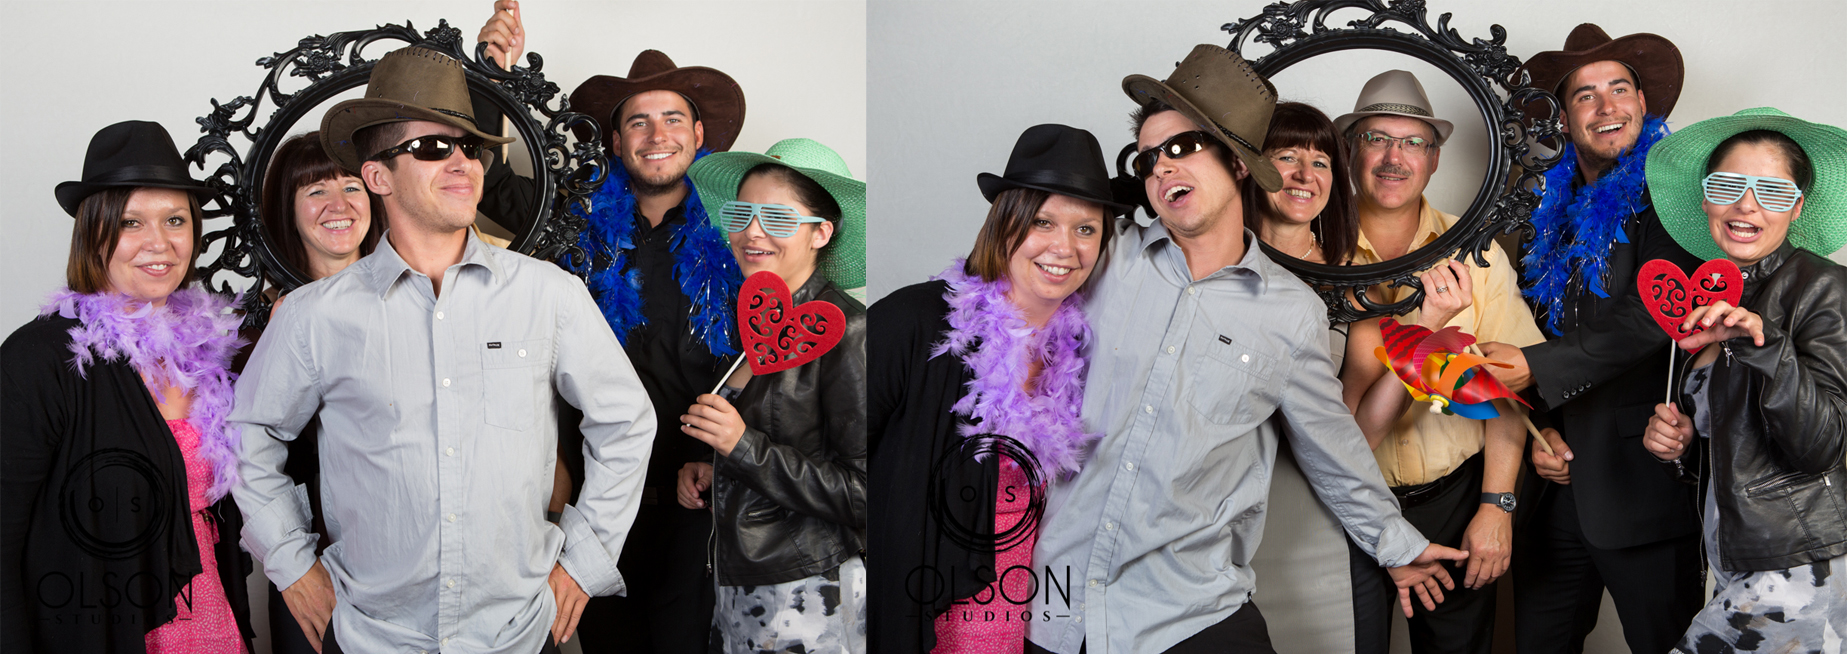 Lindsey and Darrell - Photo Booth - Red Deer Wedding Photography (59)